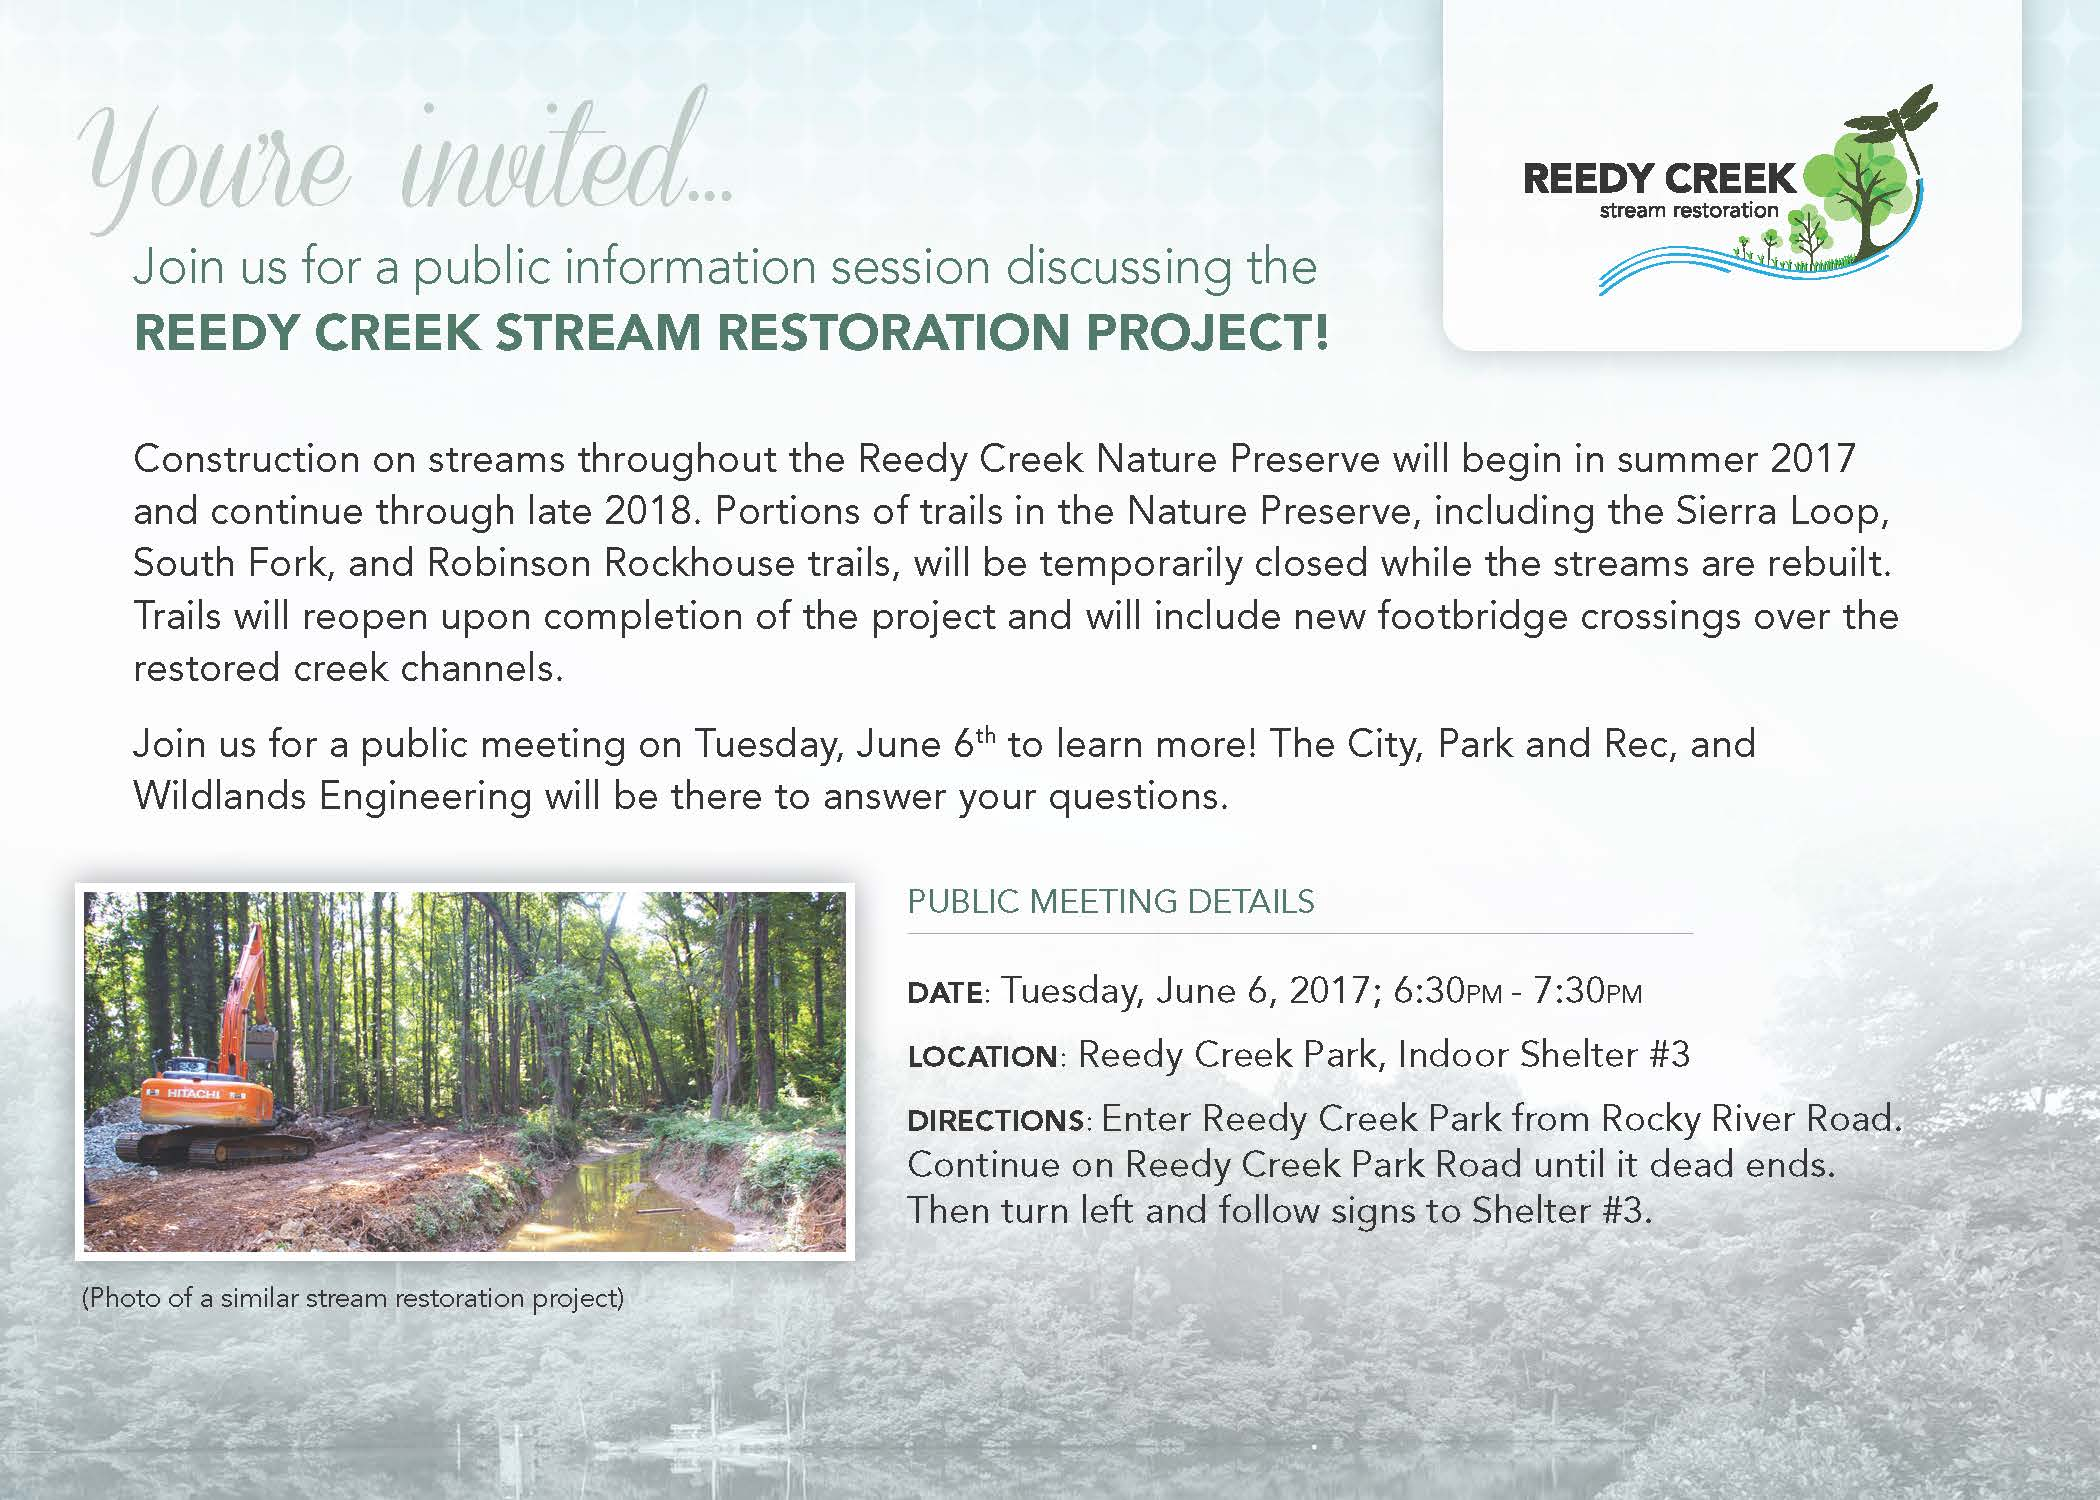 Reedy Creek stream restoration